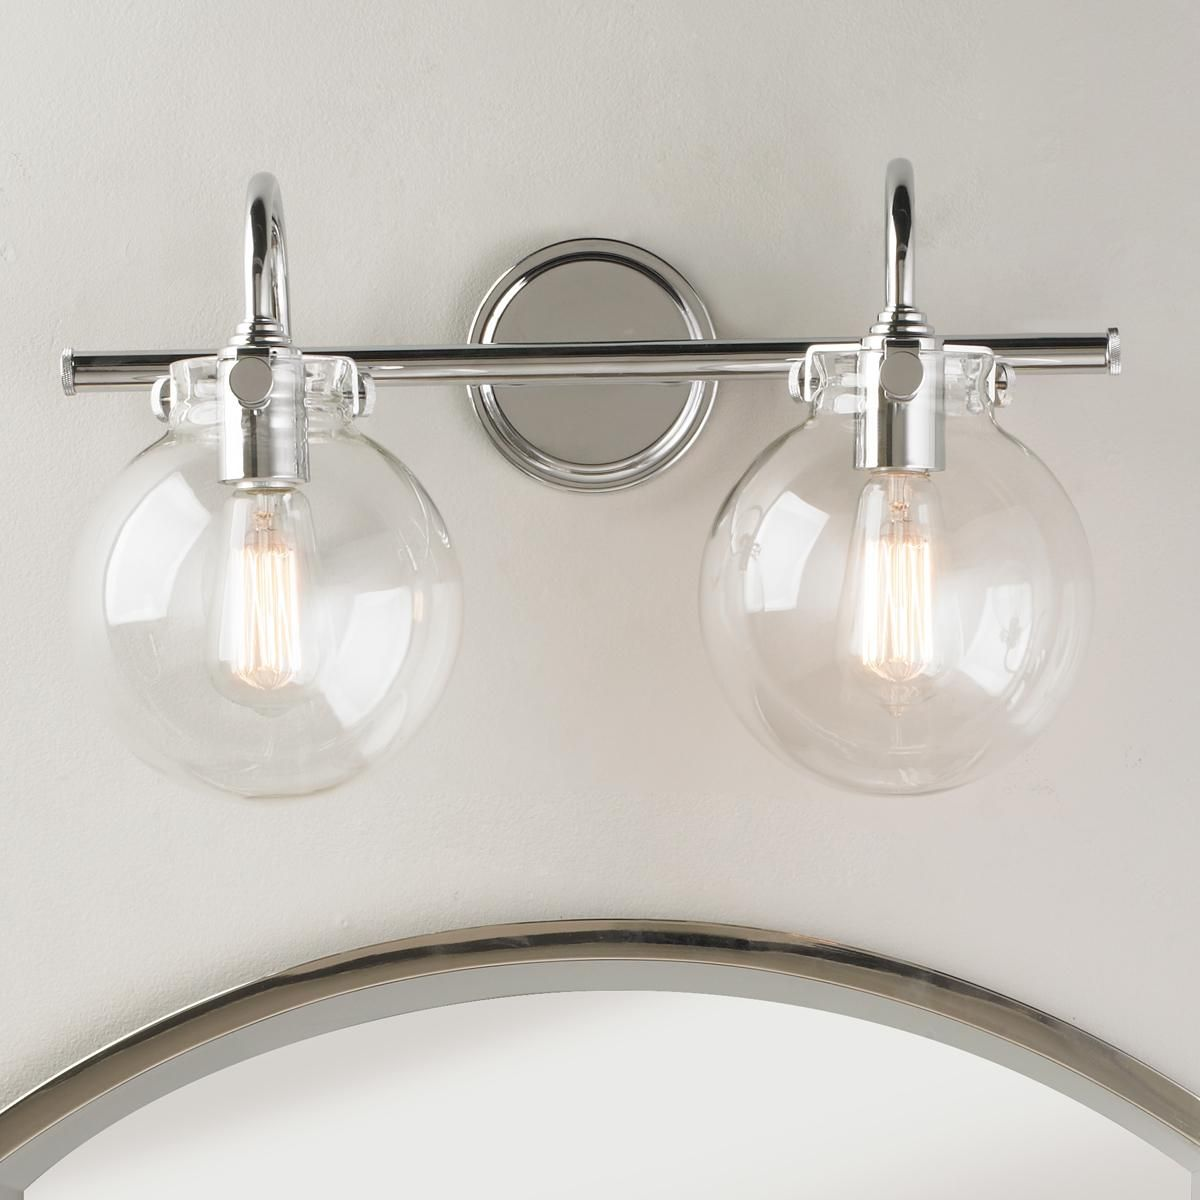 Retro glass globe bath light 2 light bath light globe for Modern light fixtures bathroom